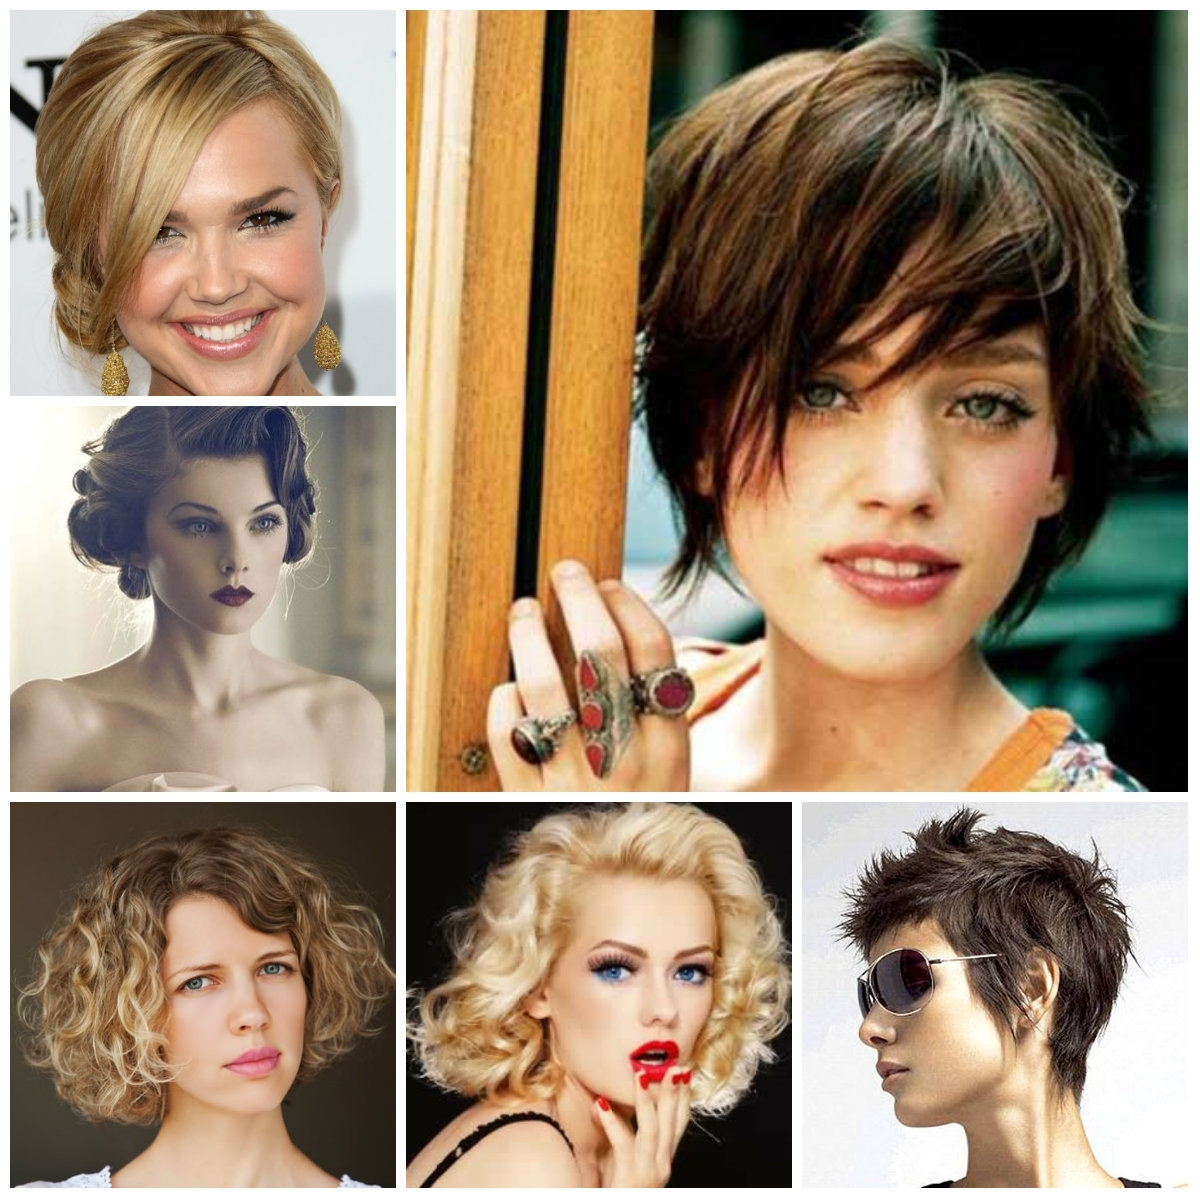 Displaying Gallery Of Rock Pixie Hairstyles View 13 Of 15 Photos